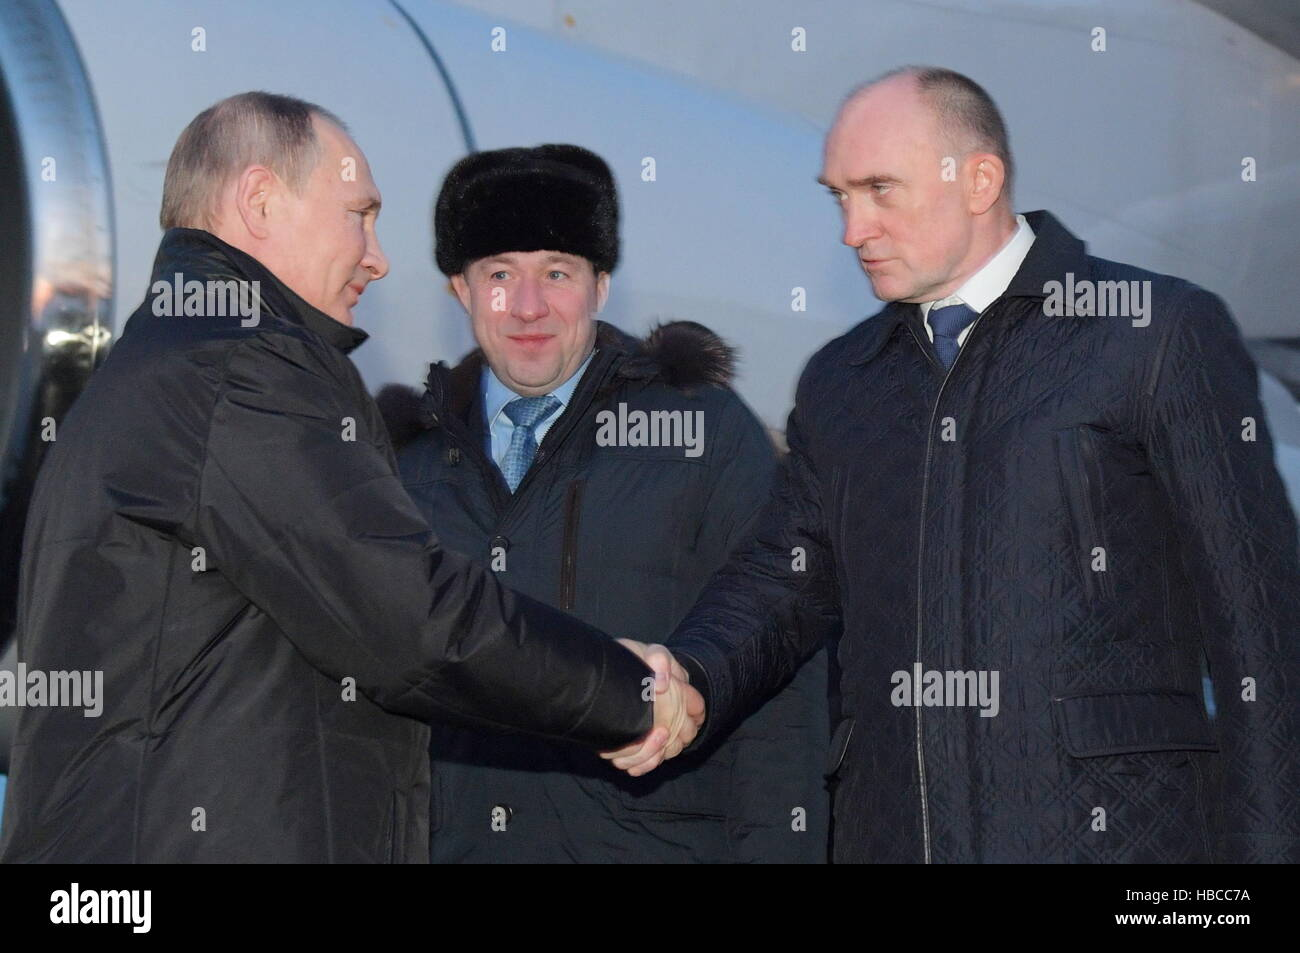 Chelyabinsk Region, Russia. 5th Dec, 2016. Chelyabinsk Region Governor Boris Dubrovsky (R) welcomes Russia's - Stock Image